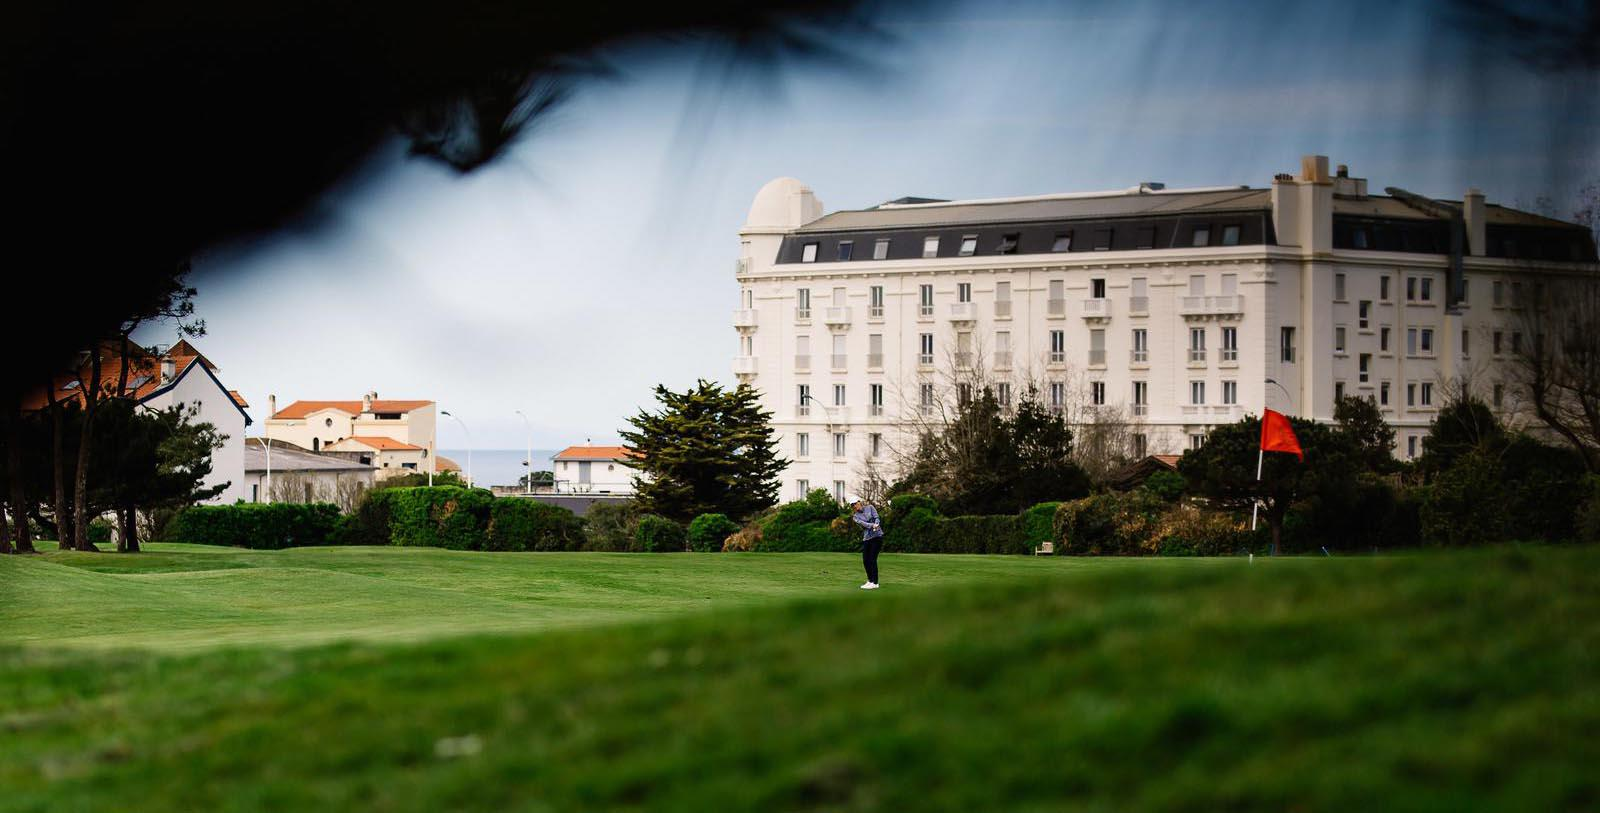 Image of Golf Course Le Régina Biarritz Hôtel & Spa - MGallery by Sofitel, 1907, Member of Historic Hotels Worldwide, in Biarritz, France, Explore